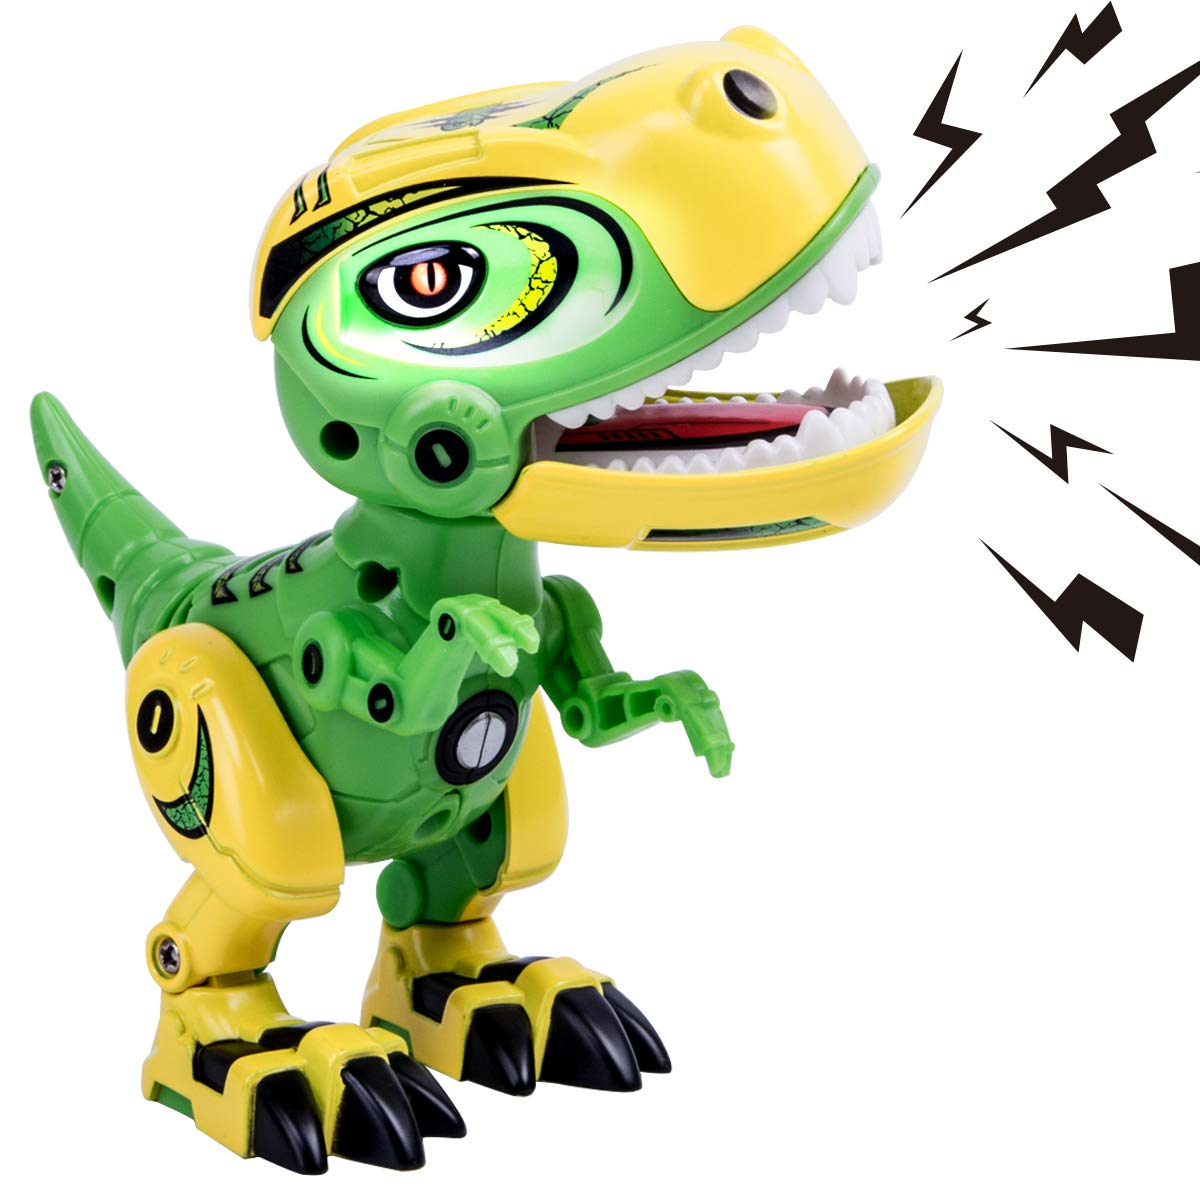 GILOBABY Dinosaur Toys for Kids, Alloy Metal Mini Tyrannosaurus Rex Dinosaur with Shine Eyes and Roaring Sound, Flexible Body, Gift for Toddlers Boys Girls (Green)